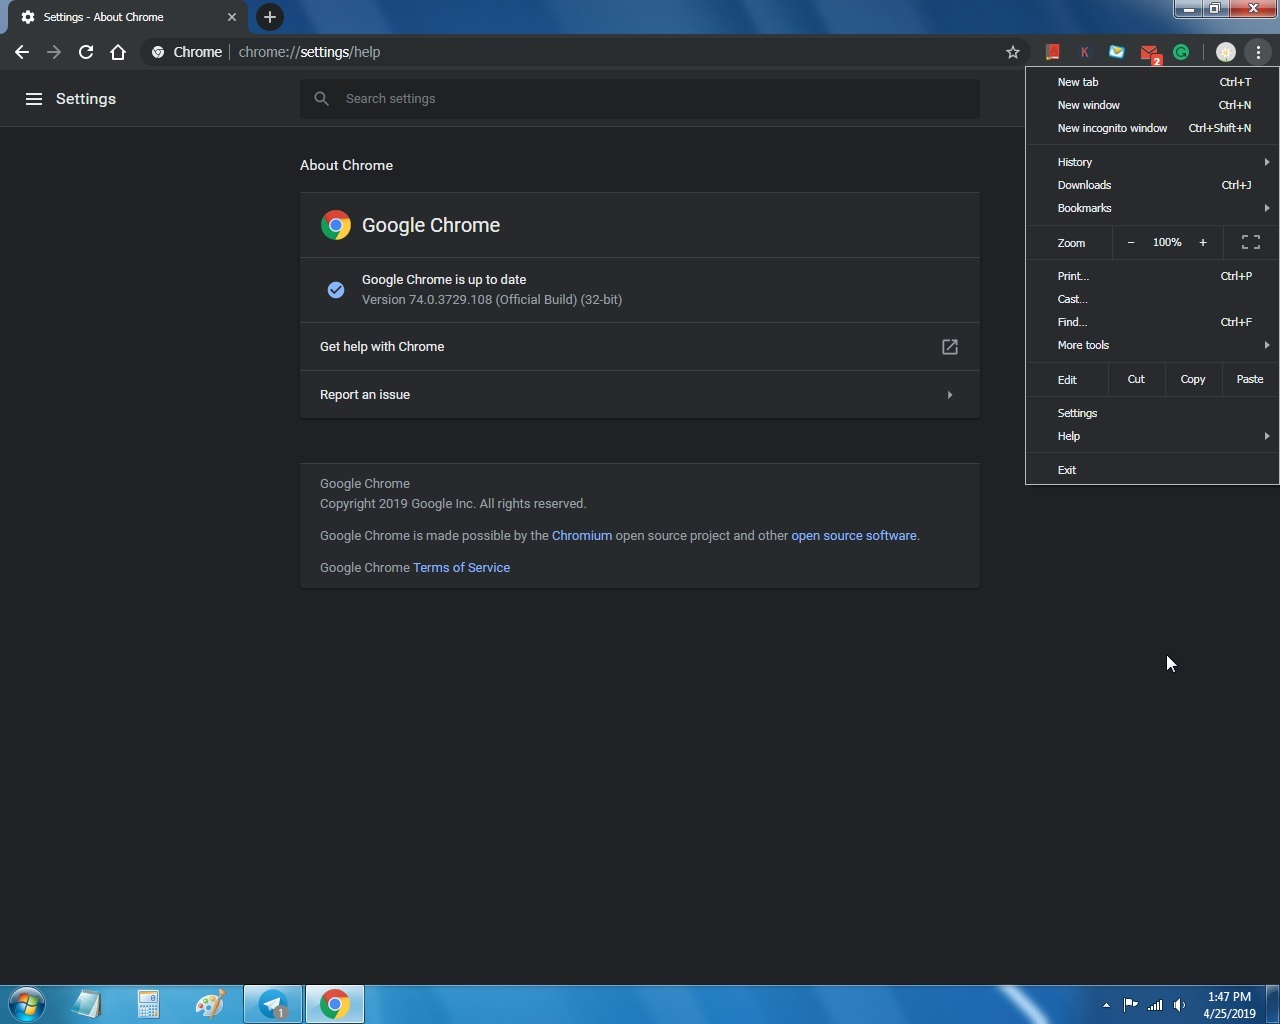 Chrome 74 for Windows 7